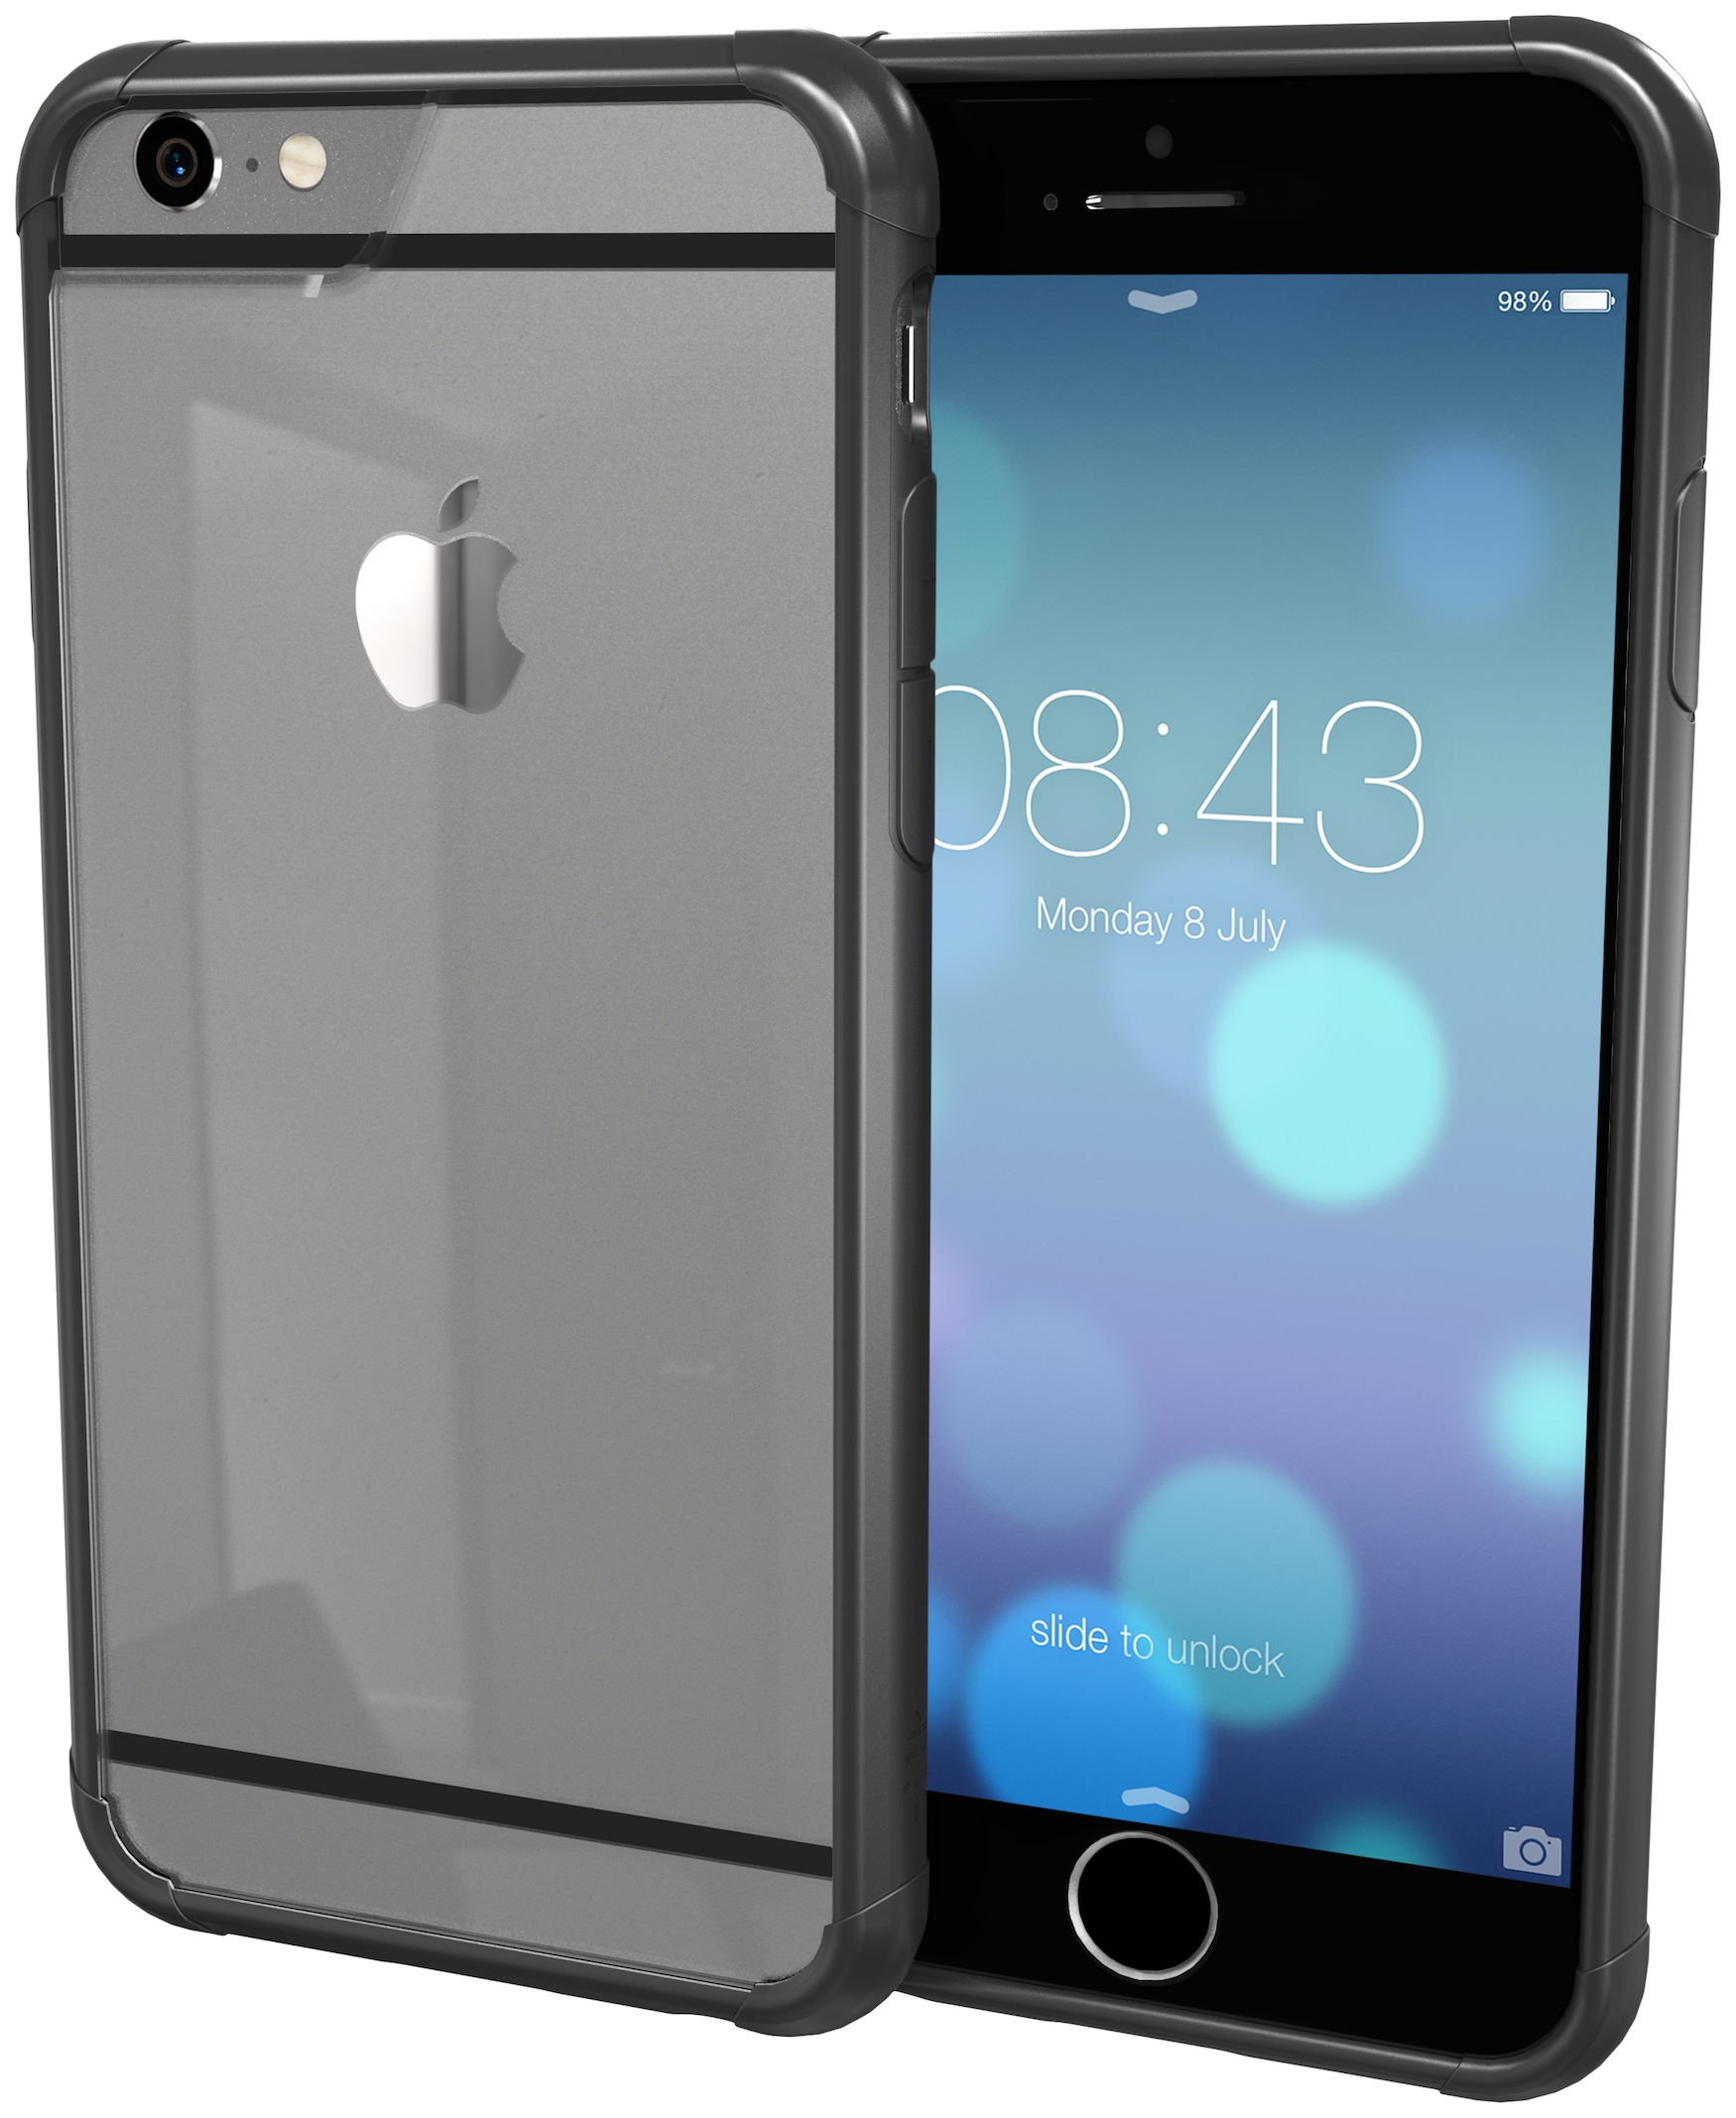 Silk Innovation ClearView Ultra Slim iPhone 6 Case